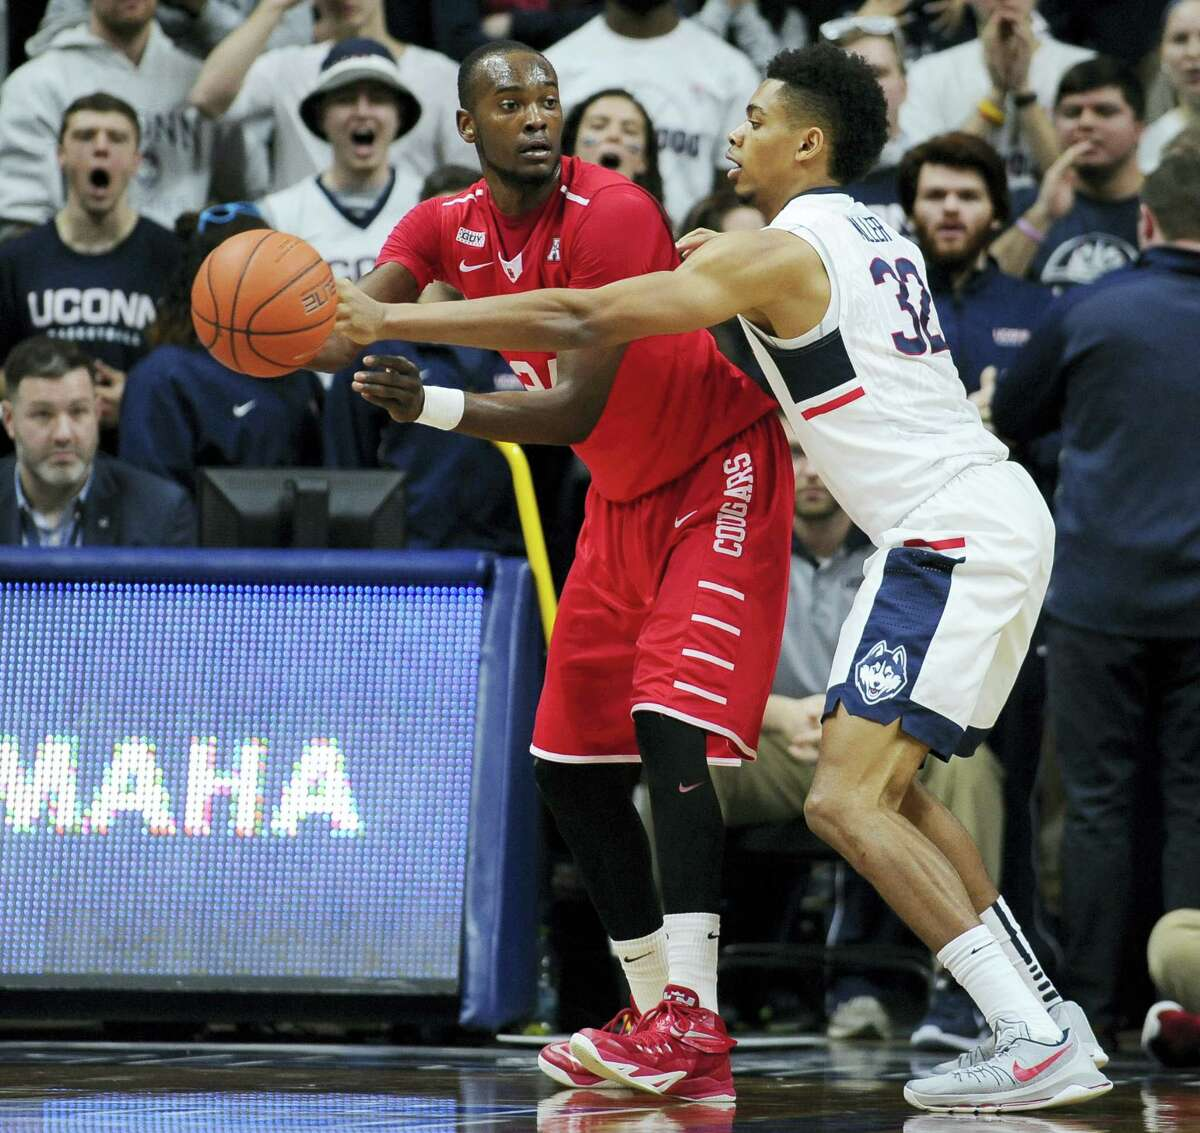 UConn senior Shonn Miller, right, will be honored in a ceremony before today's game against South Florida.